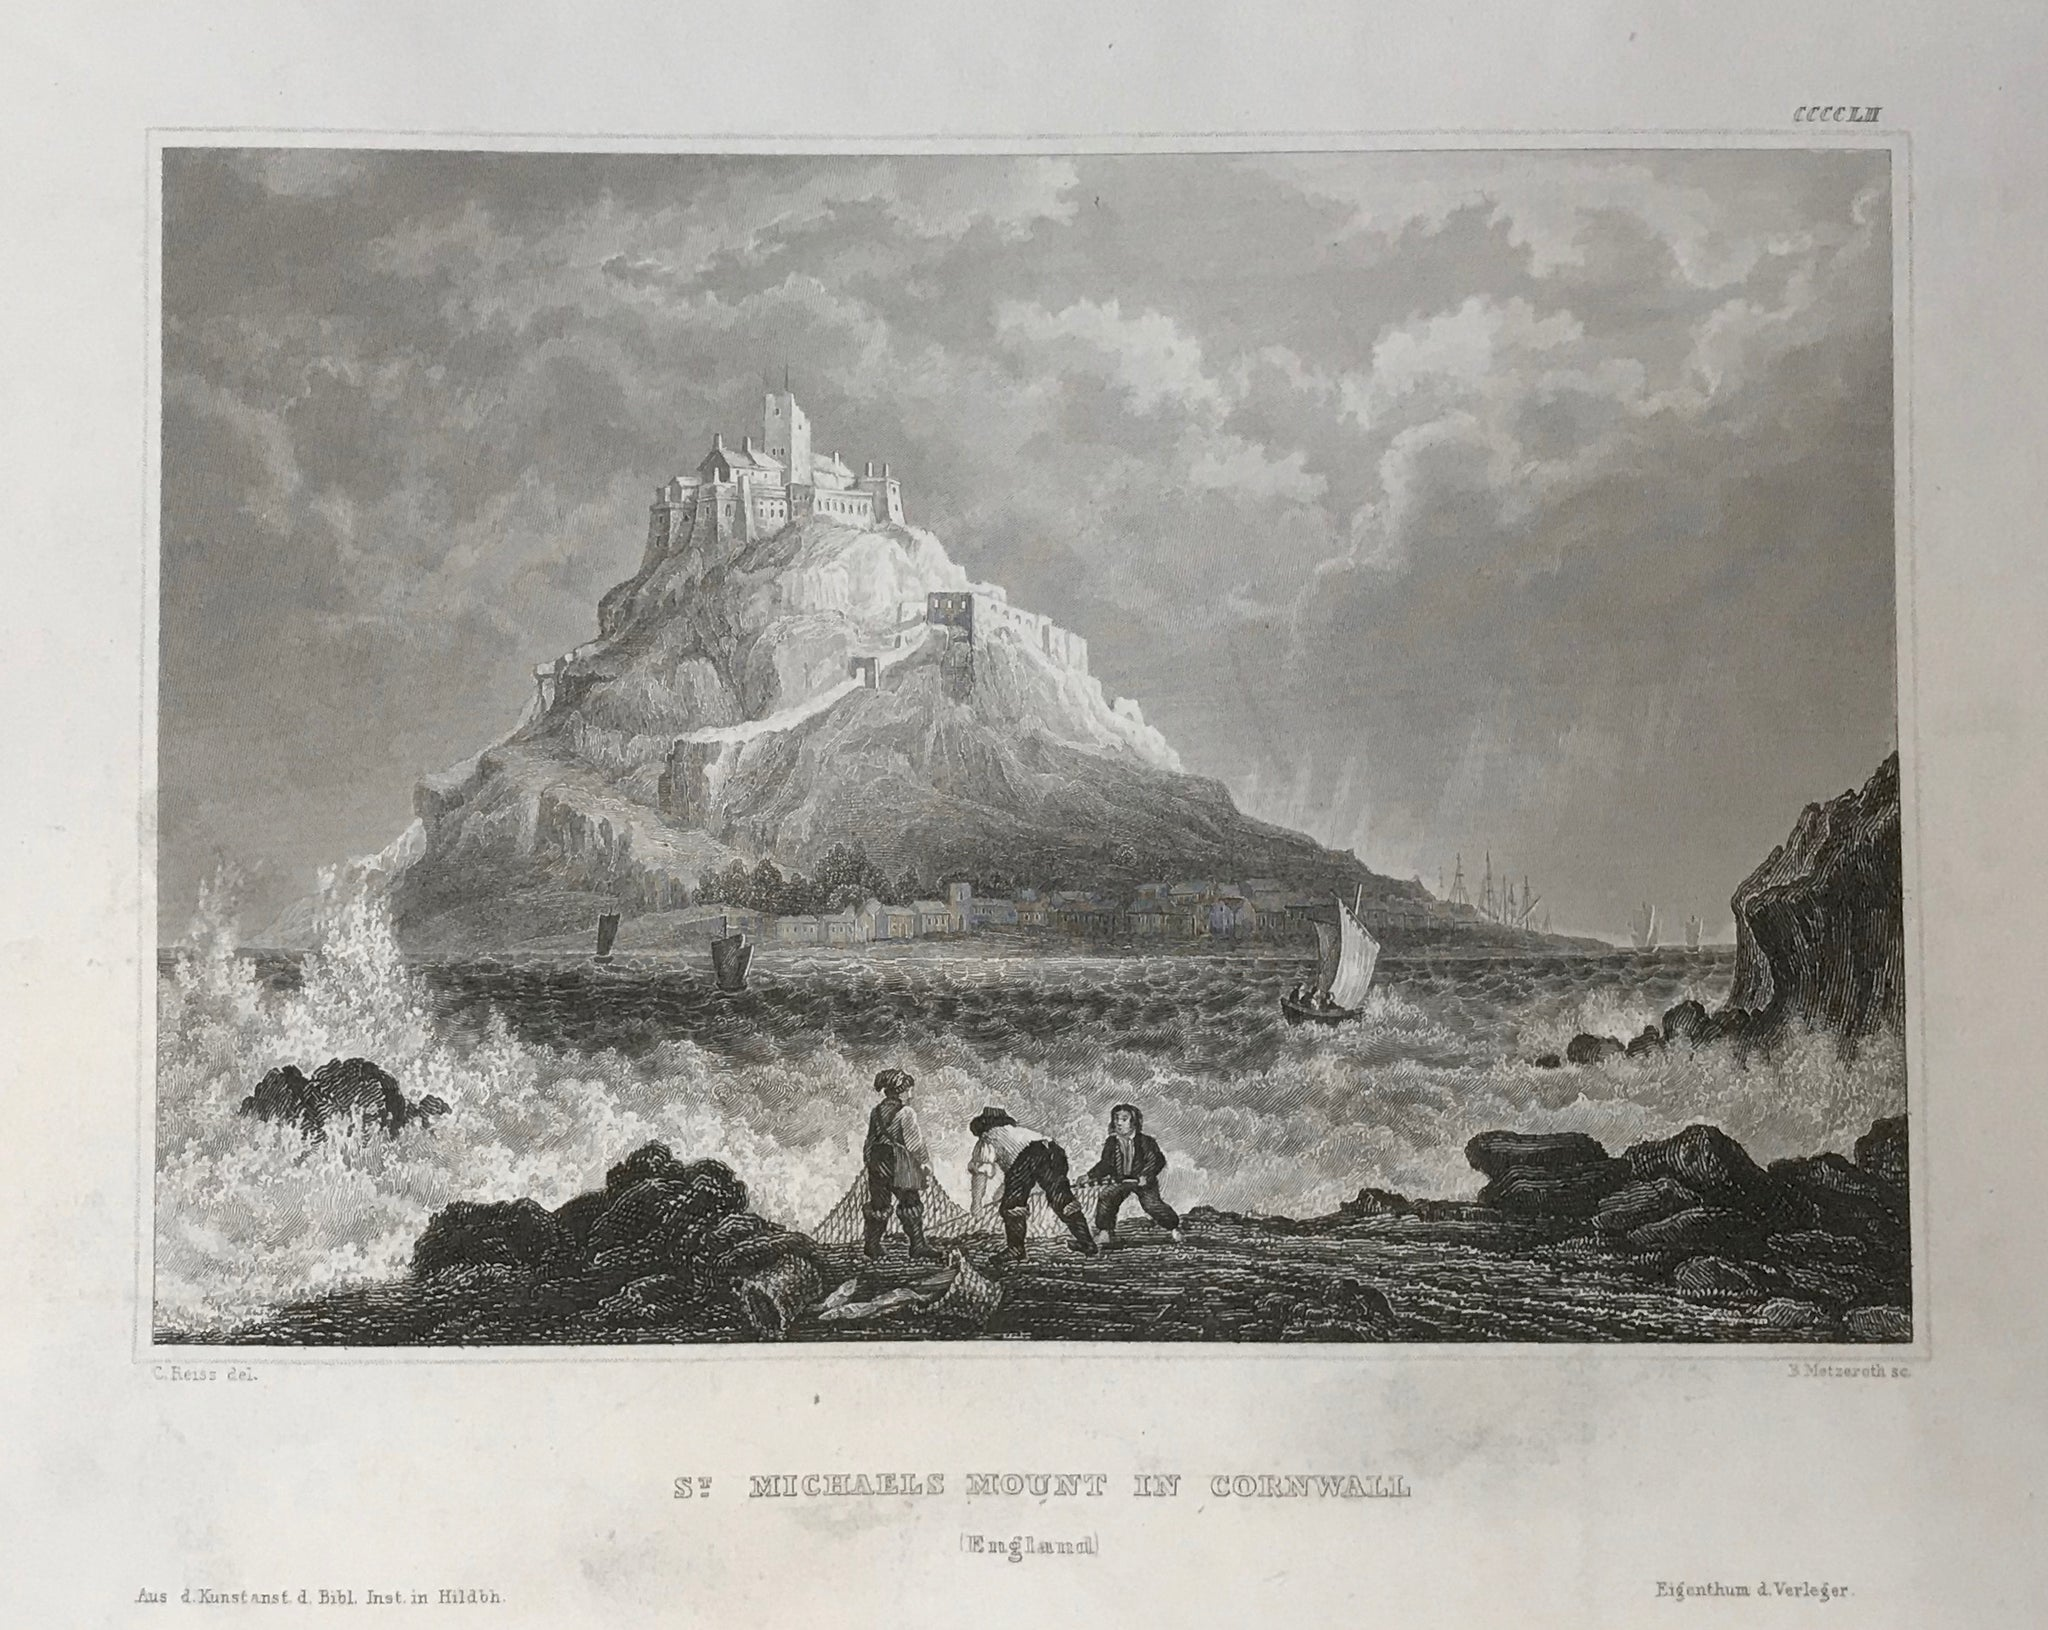 St. Michaell Mount in Cornwall (England)  Steel engraving by B. Metzroth after C. Reiss ca 1850. Wide margins.